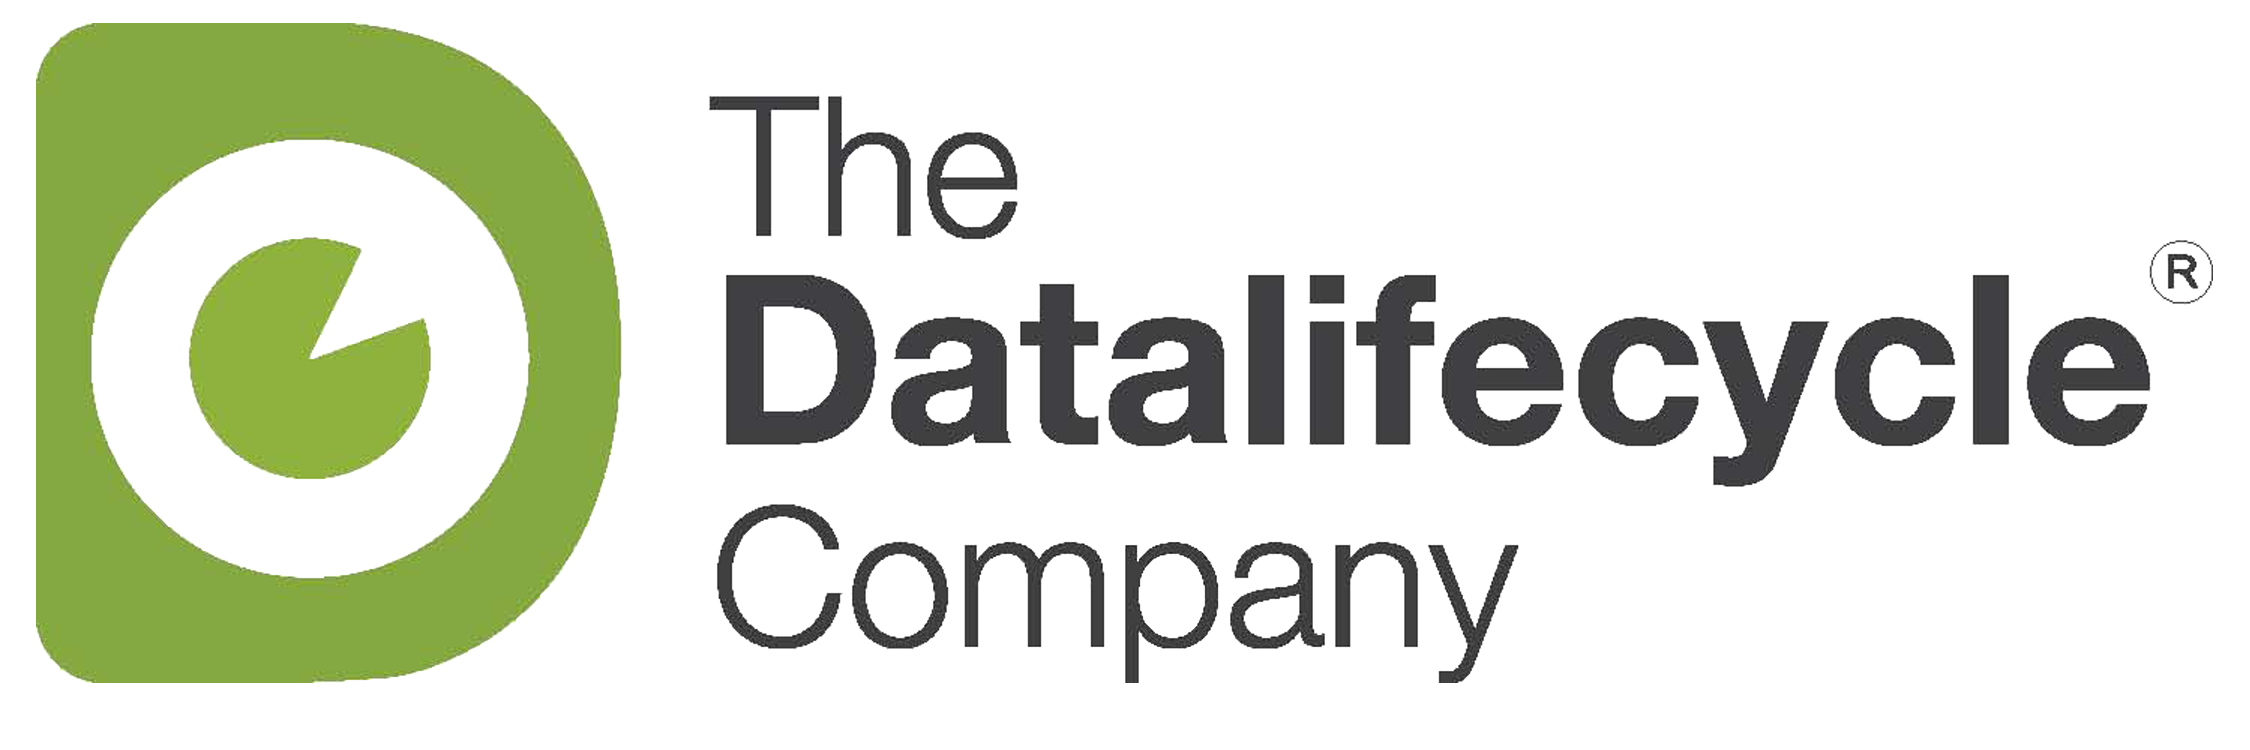 Datalifecycle.com Pvt Ltd